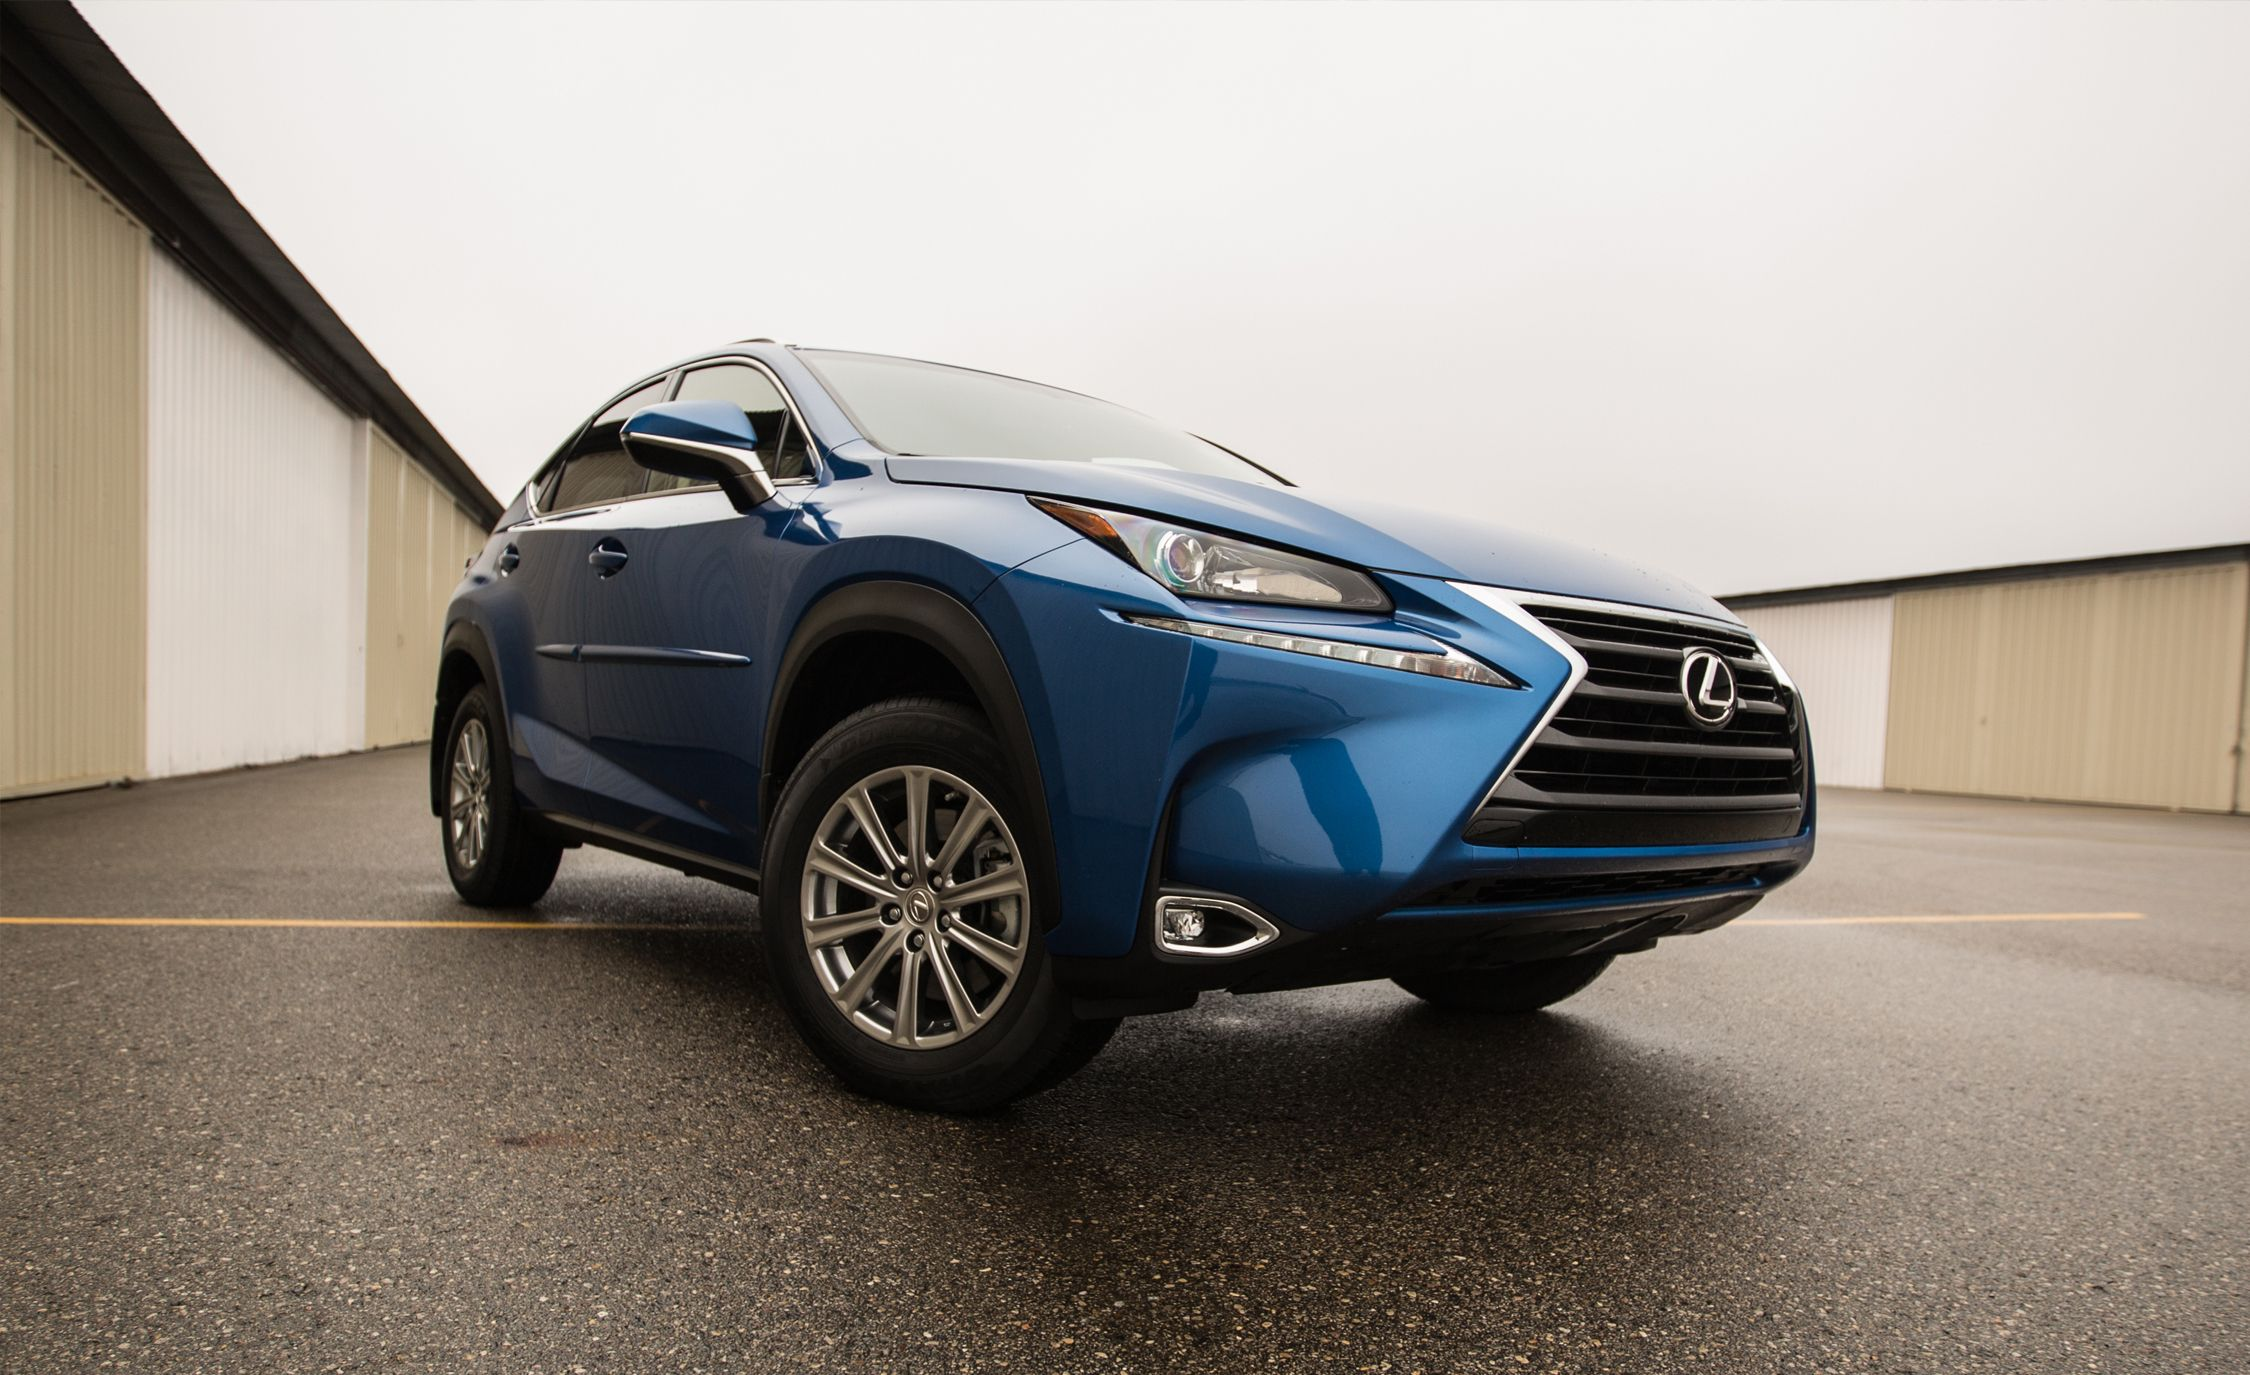 2017 Lexus Nx200t Nx300h Hybrid Quick Take 8211 Review Car And Driver